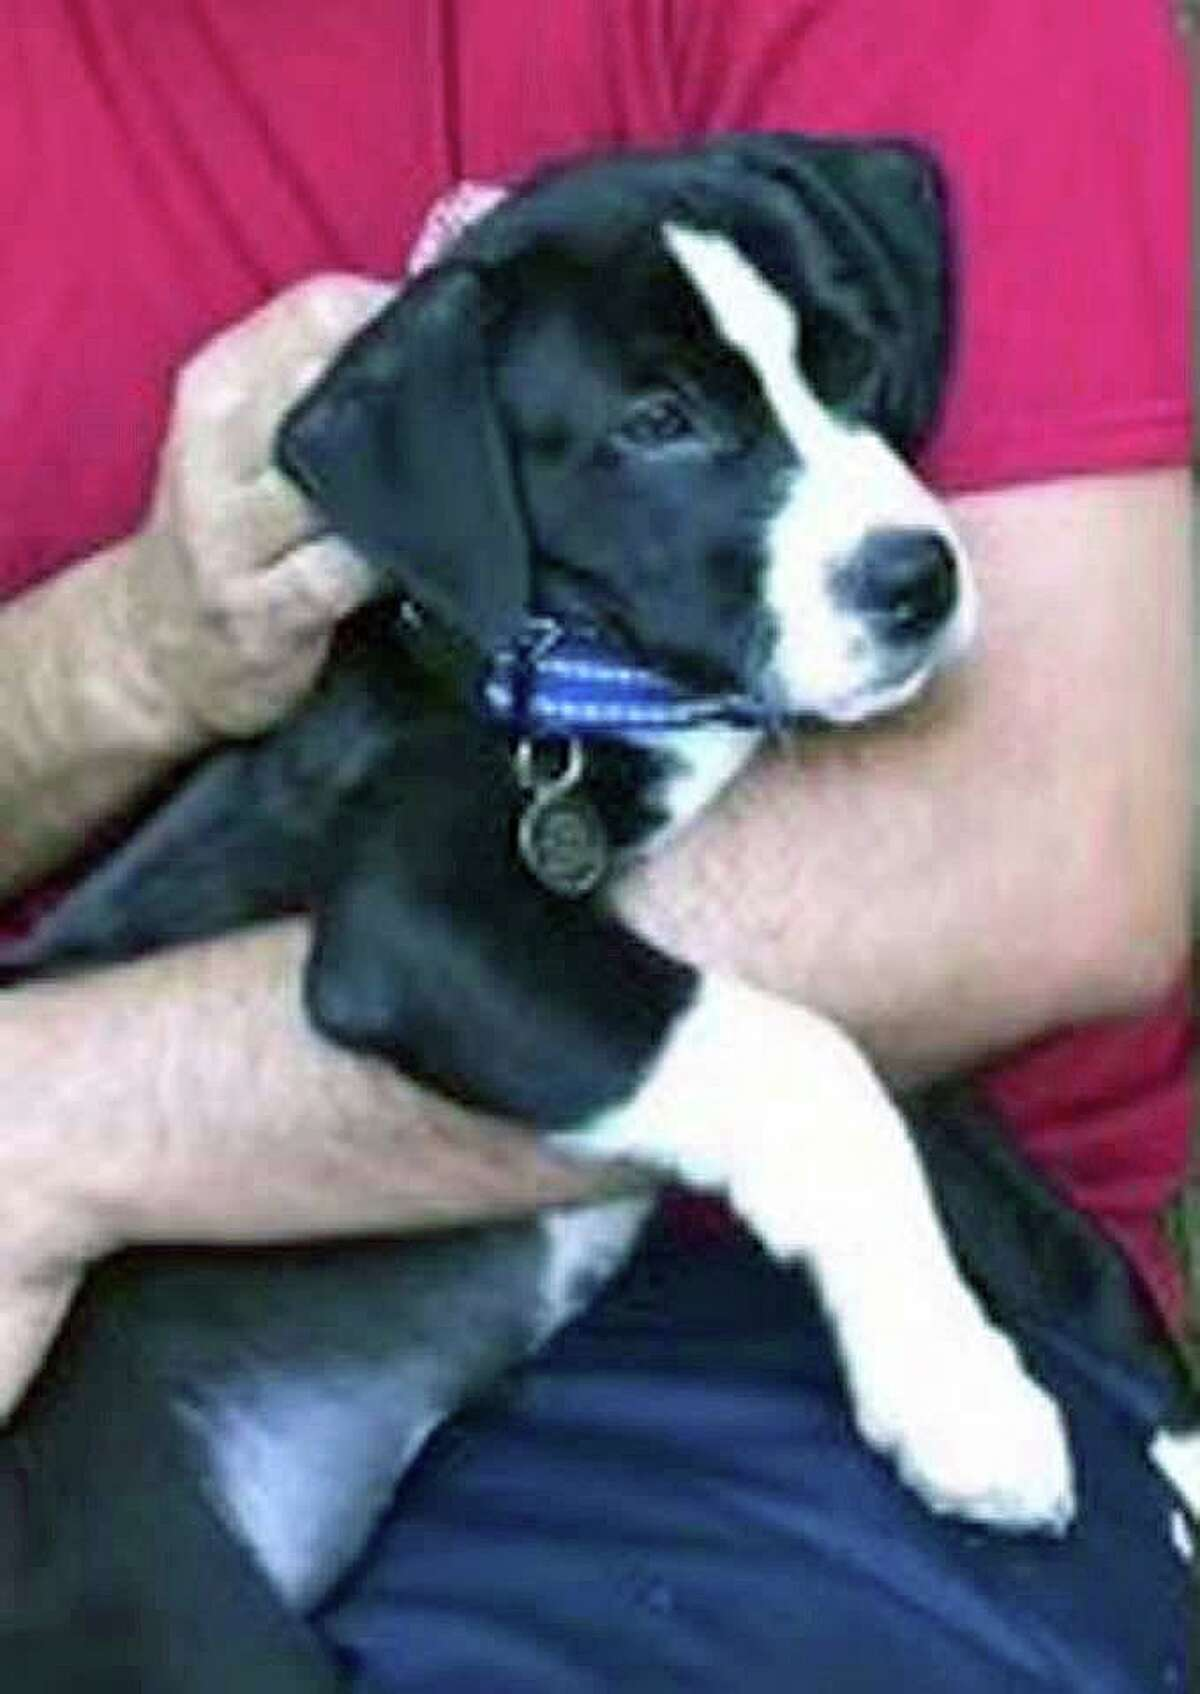 The man hit by the vehicle was walking his puppy at the time. Police said the dog had a brown leash attached to him at the time of the accident. Anyone who sees the puppy is asked to call 860-798-2000.